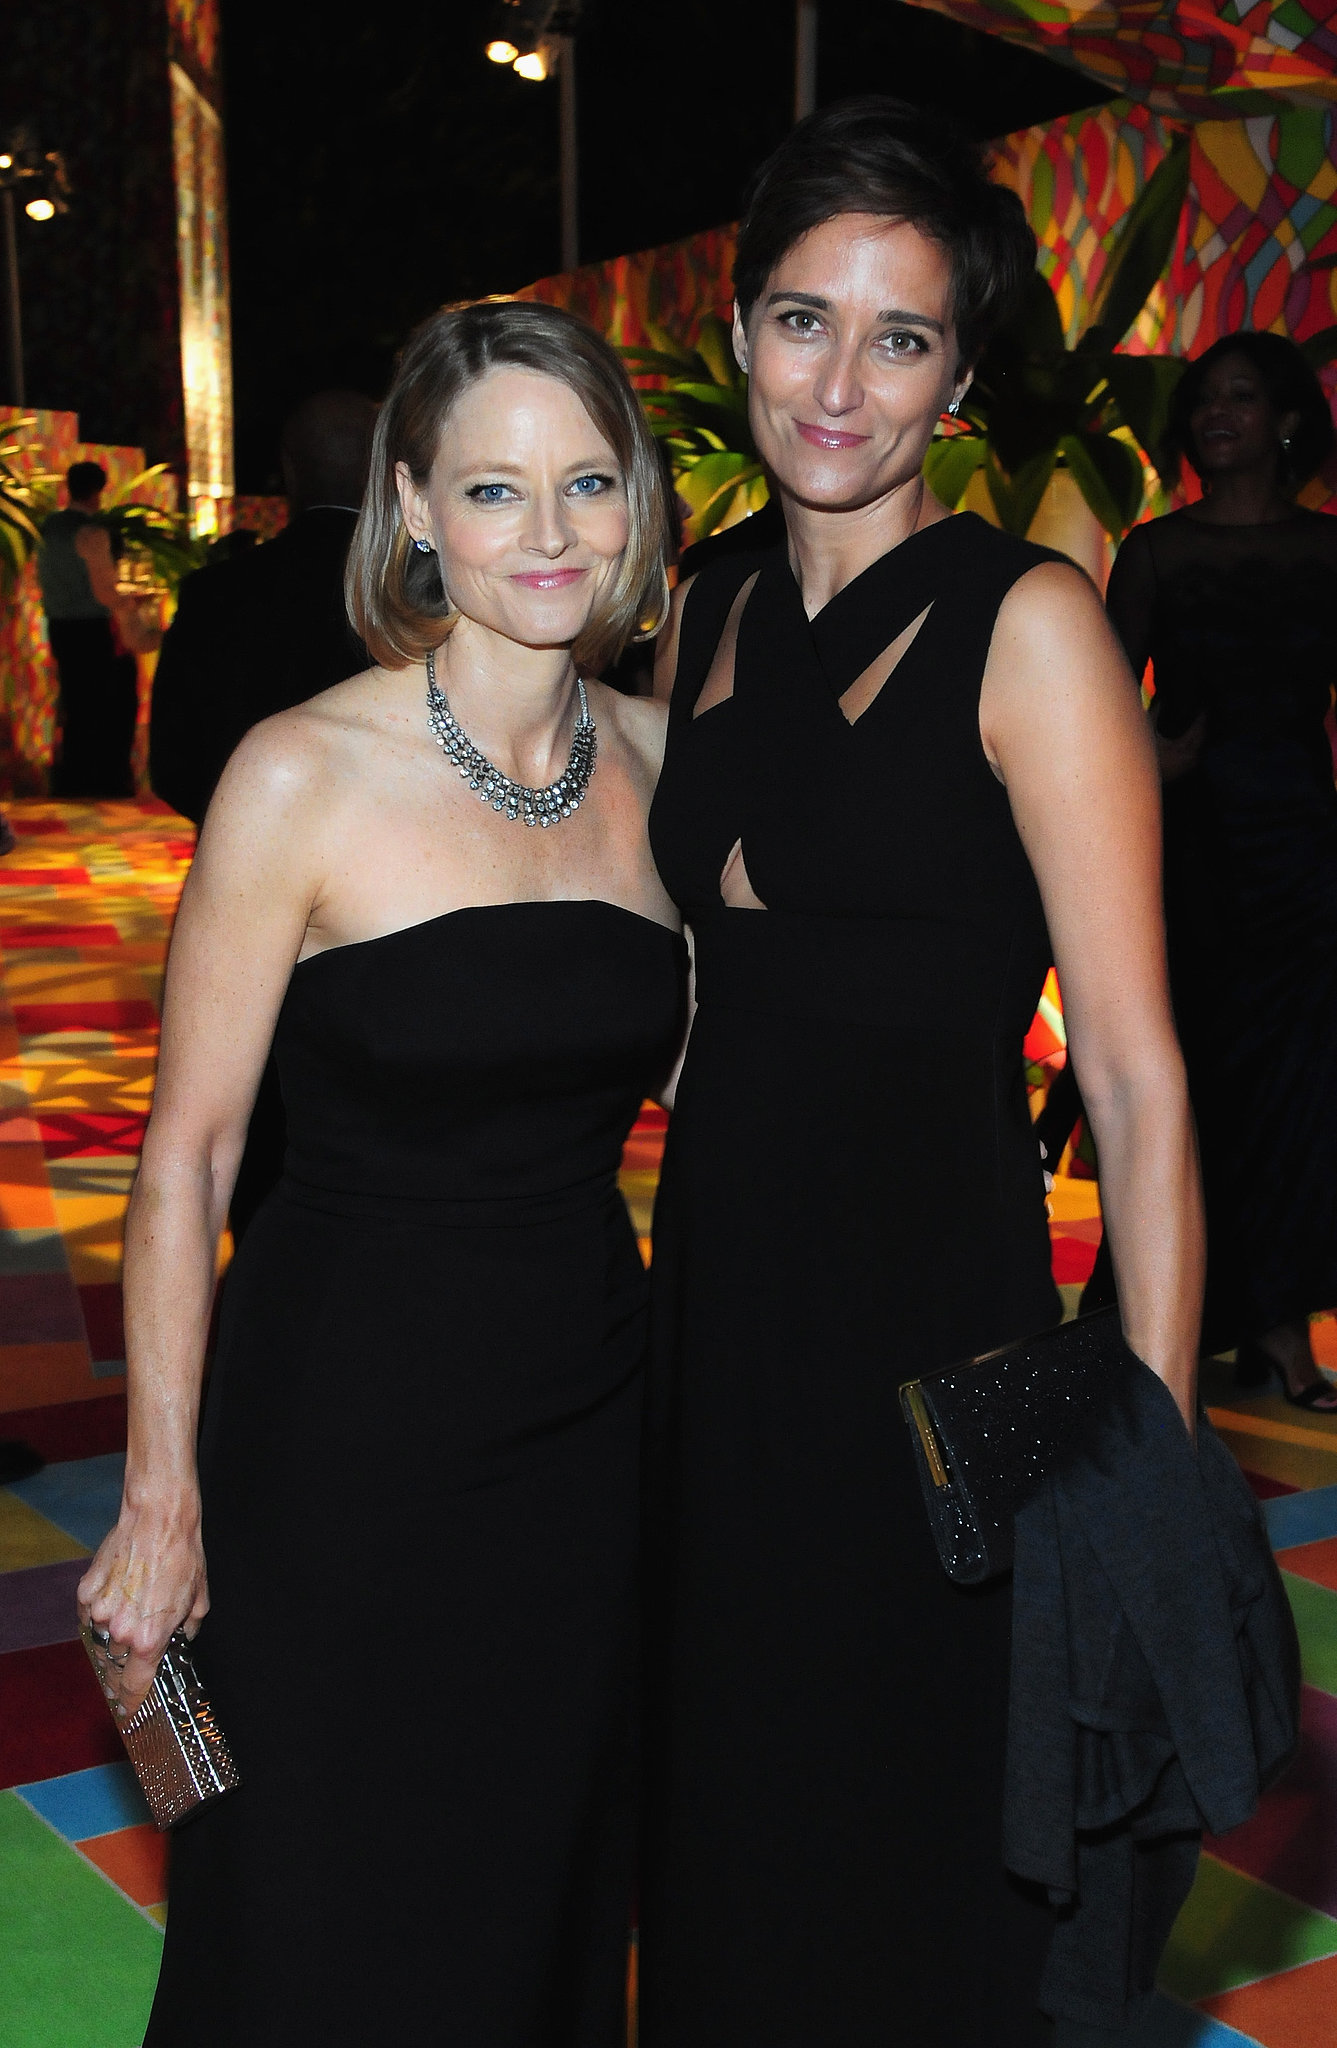 Jodie Foster and her wife, Alexandra Hedison, posed inside